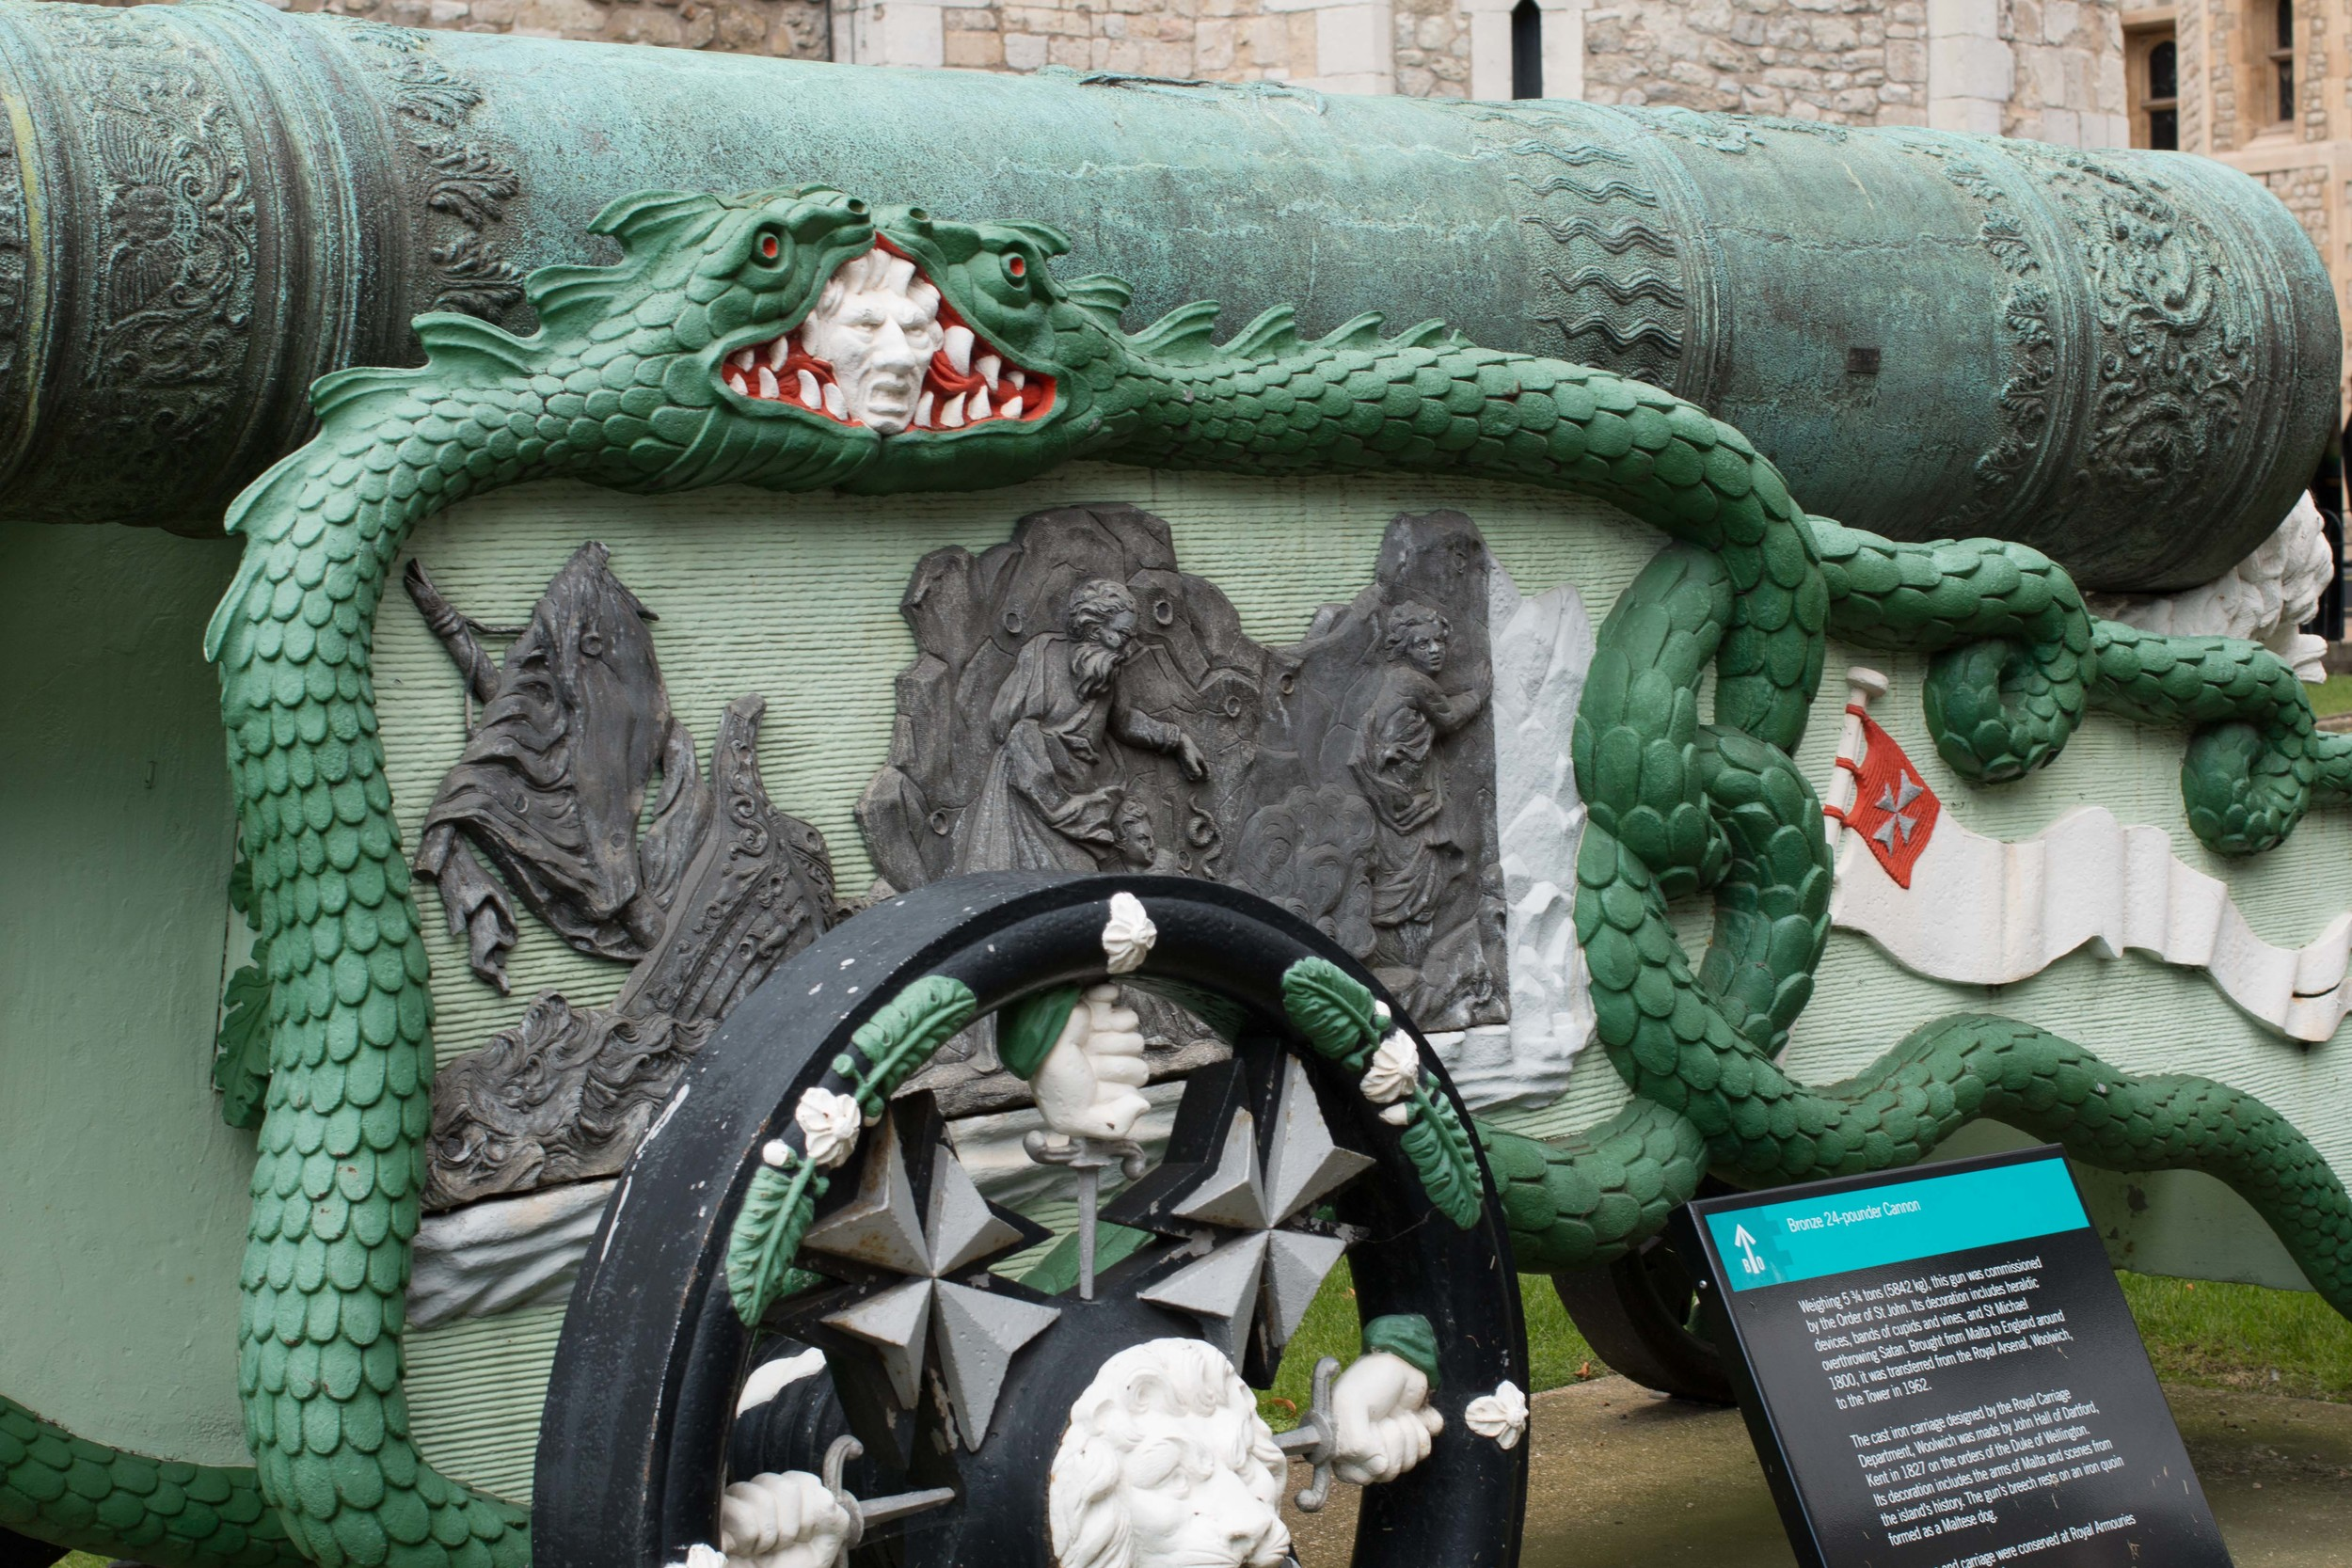 Elaborate carvings on one of the cannons